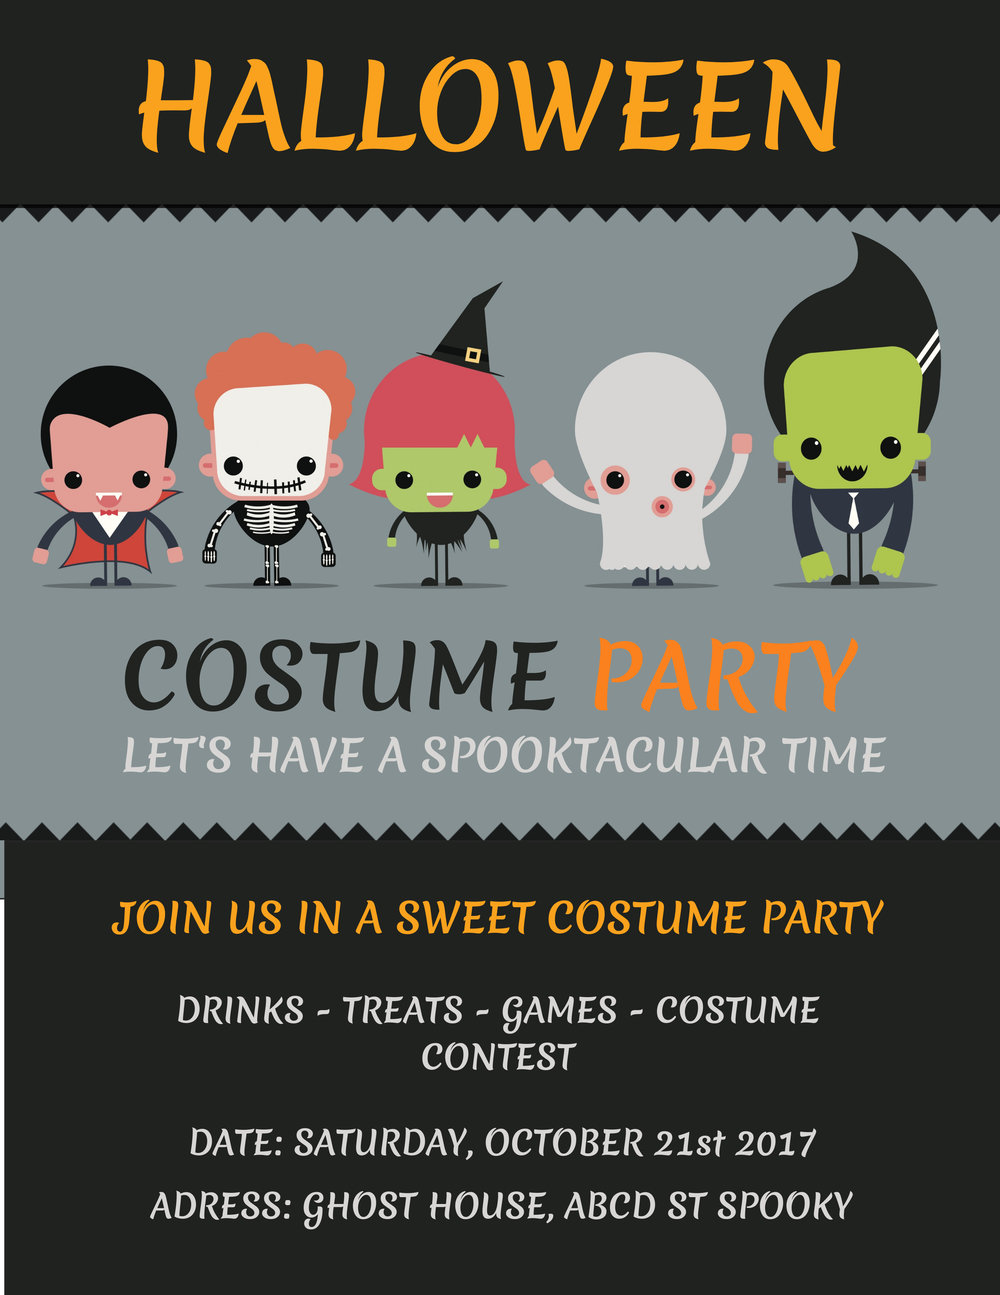 Hallowene costume party poster